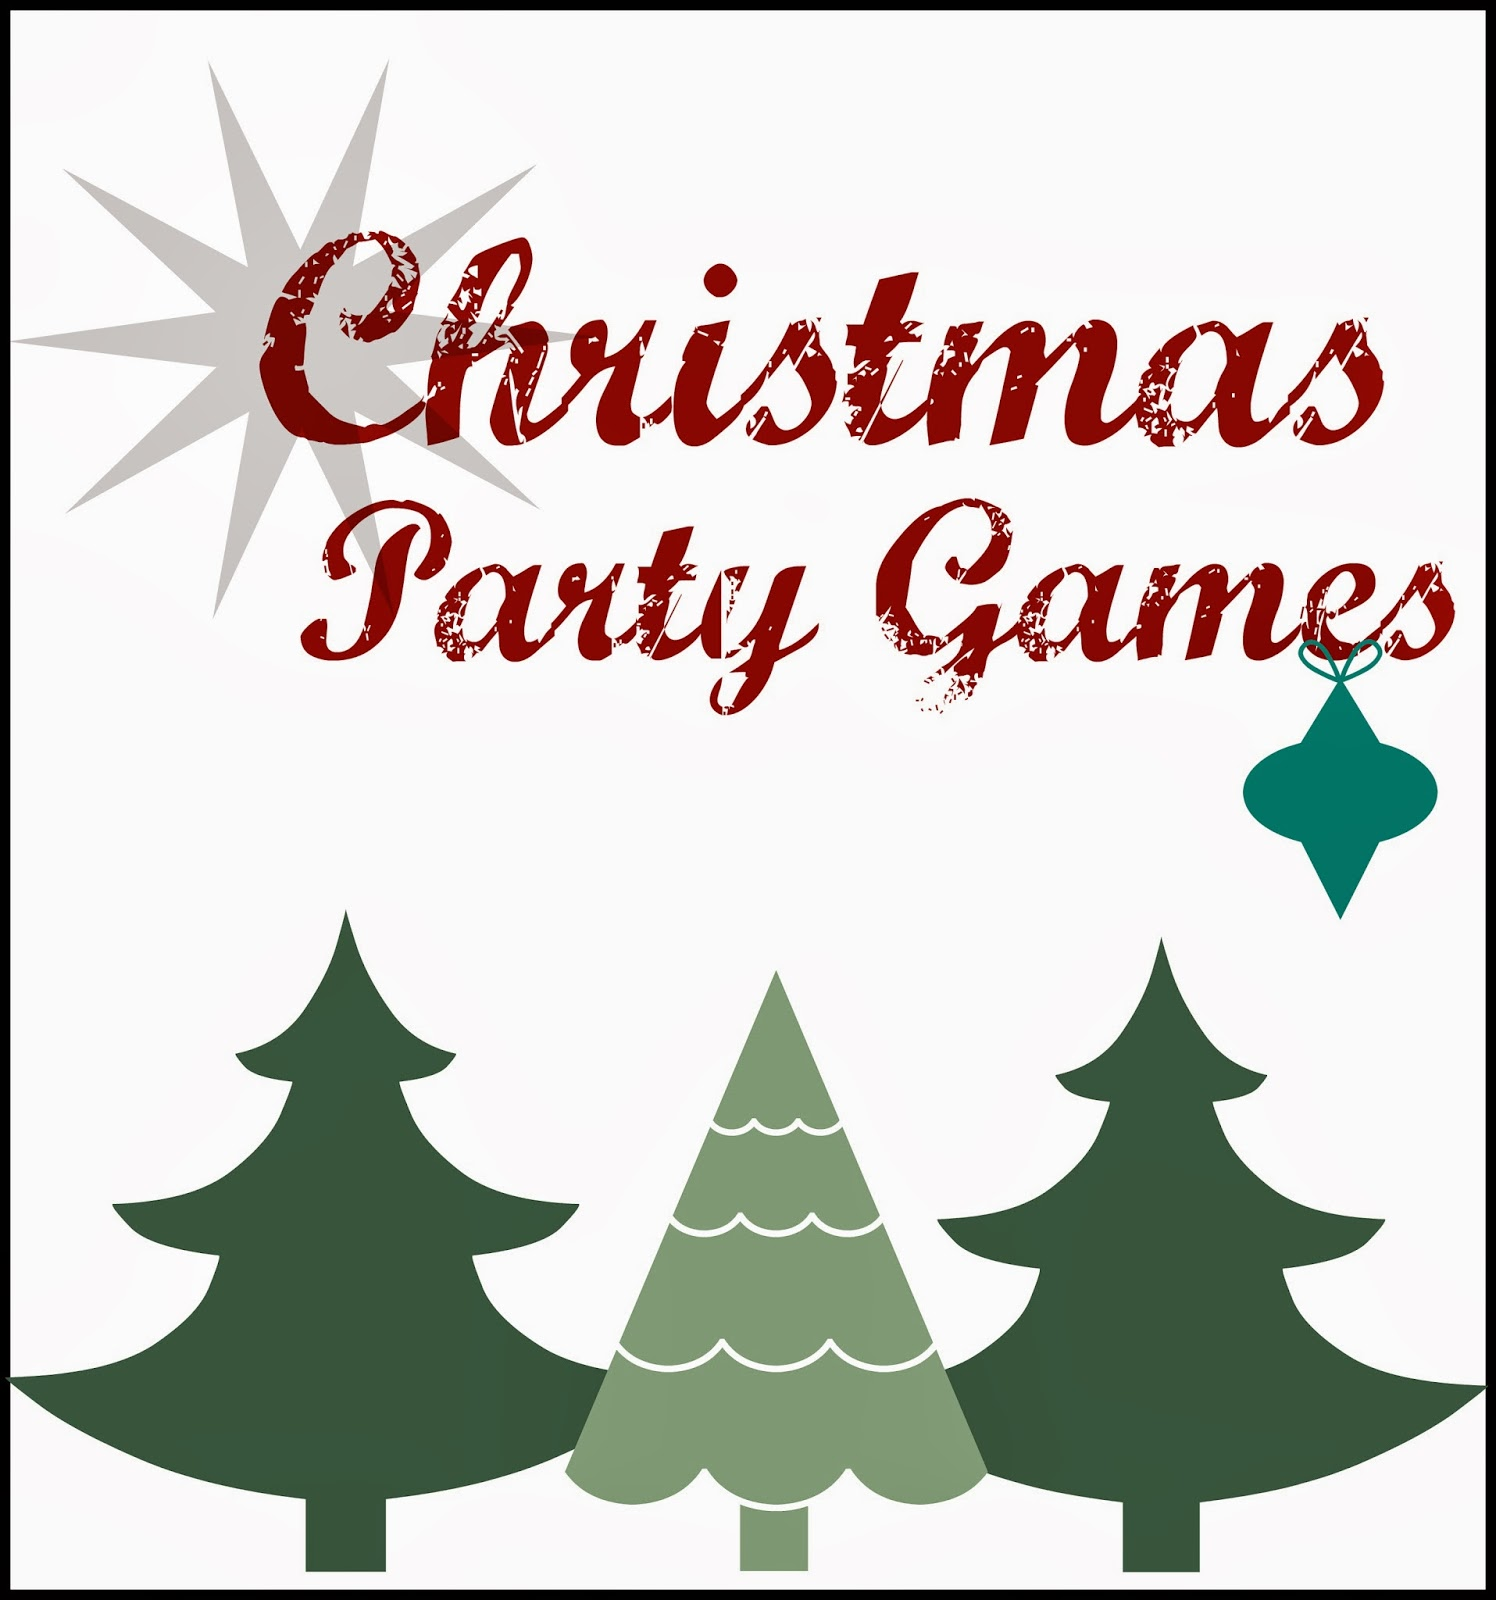 Fun Party Games for Adults